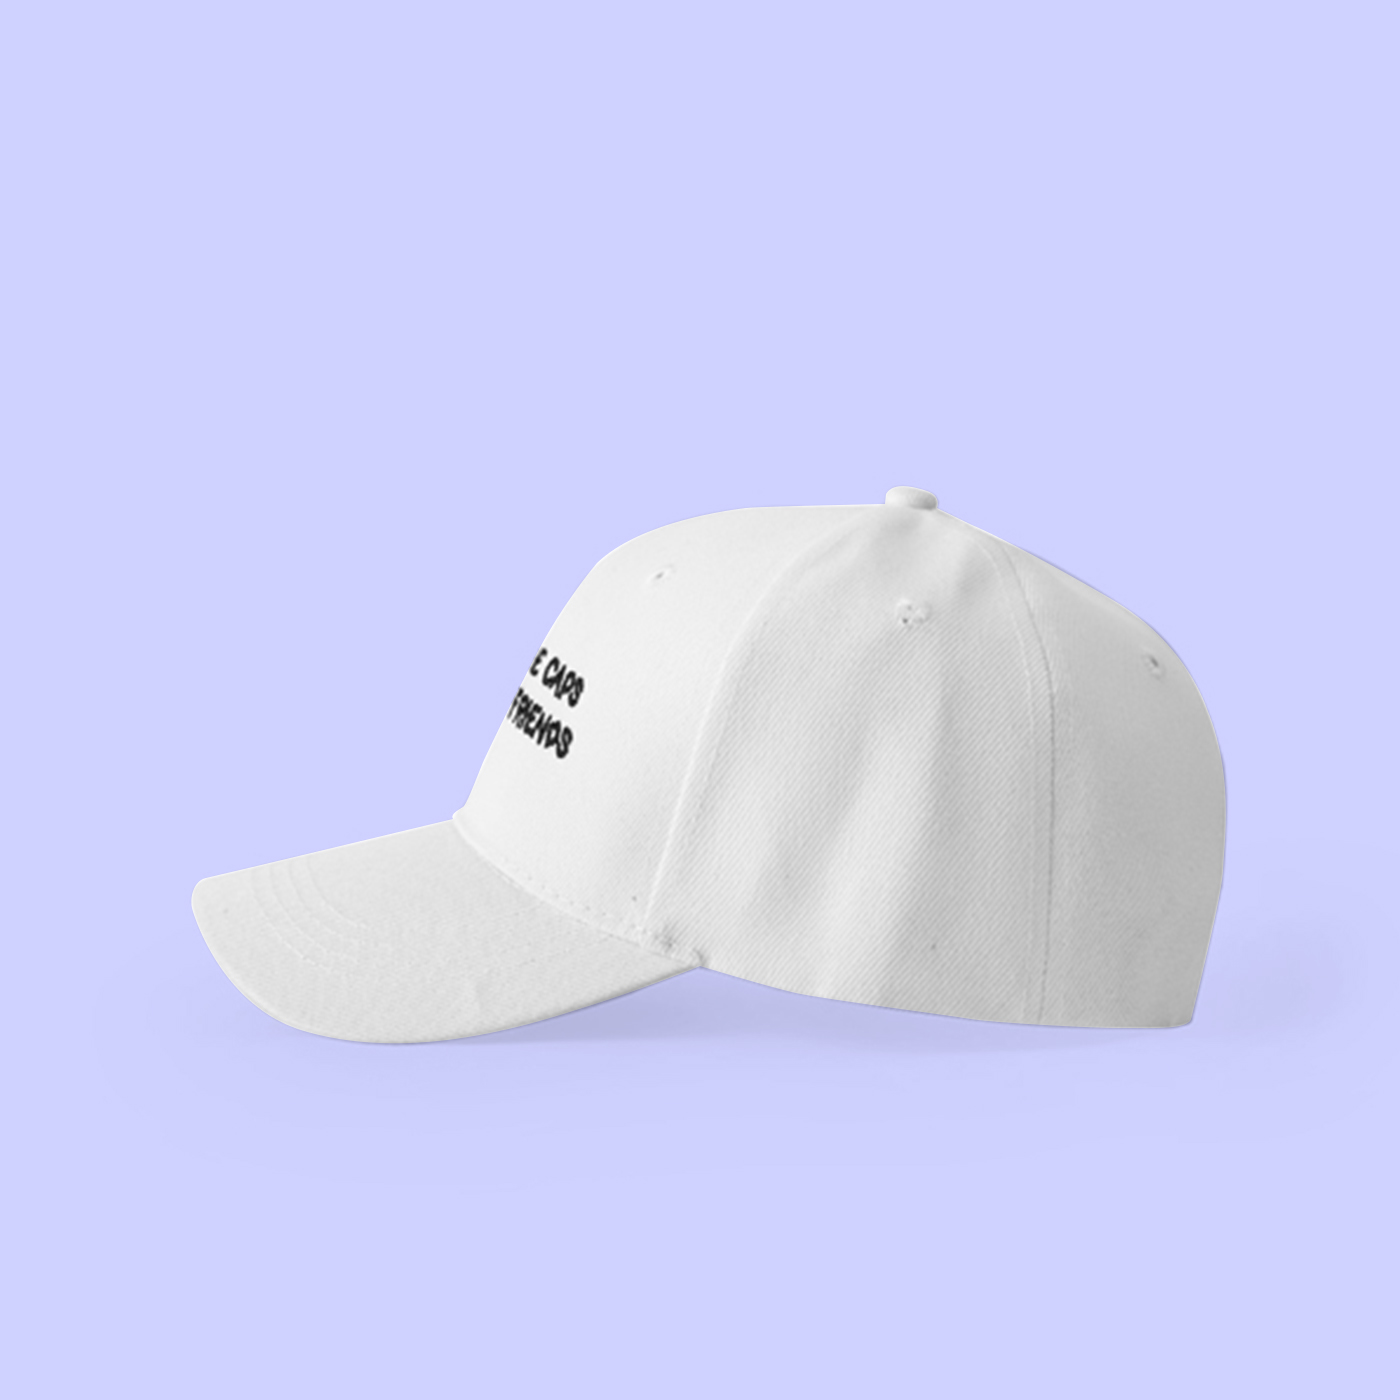 6eef7906d8f VAPORWAVE I HAVE MORE CAPS THAN REAL FRIENDS BASEBALL CAP IN WHITE -  Thumbnail 1 ...